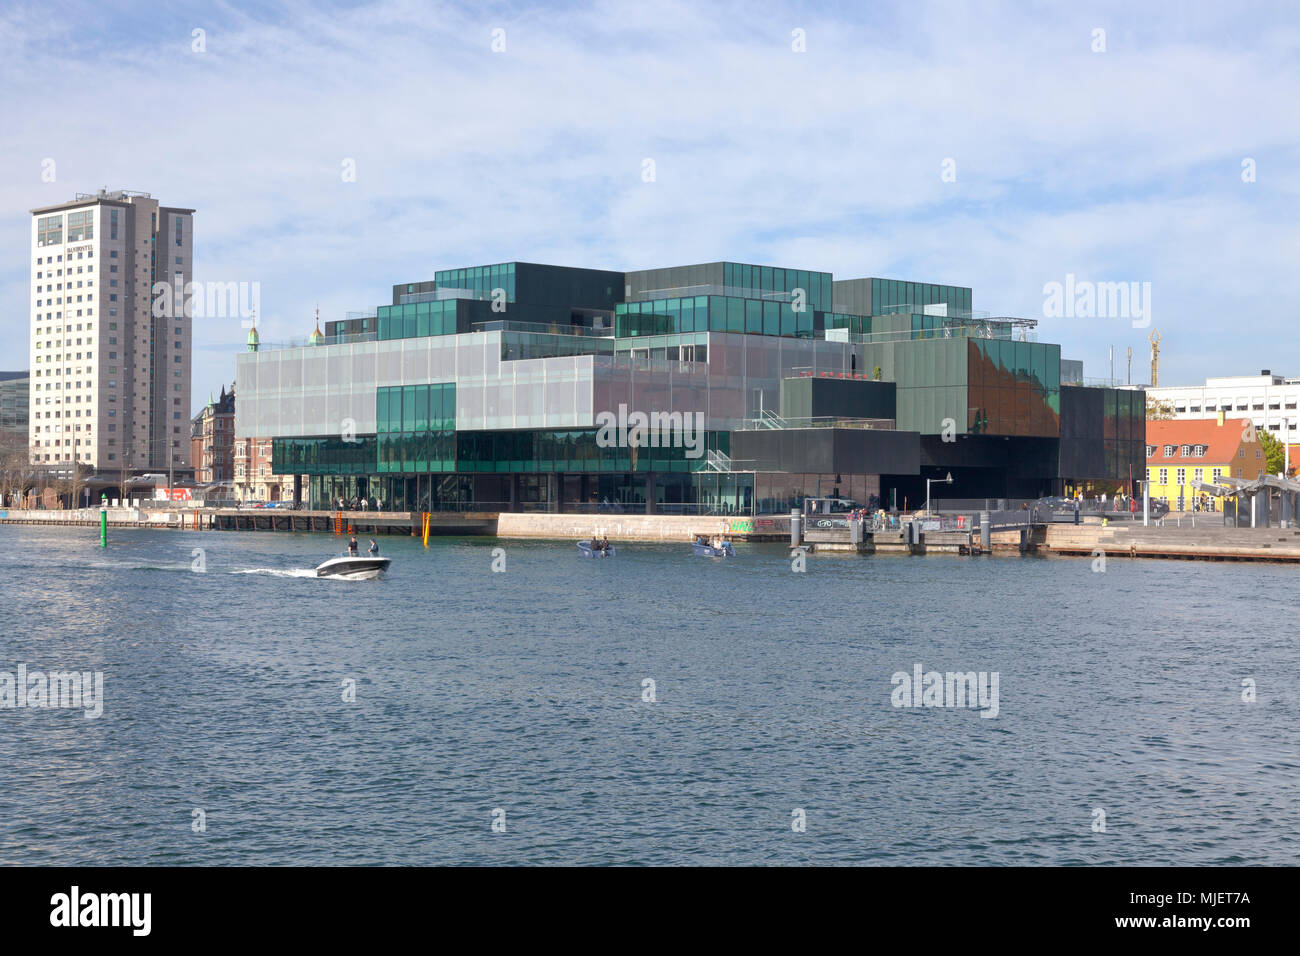 Copenhagen, Denmark. 5th May, 2018. The BLOX building, a new prestige building for architecture and design on Christians Brygge at the waterfront at Frederiksholm Canal next to the Black Diamond in the inner harbour. The building houses the Danish Architecture Centre and a number of companies working with future solutions for cities. The building was inaugurated by H.M. Queen Margrethe II yesterday - today open house to a festive opening day. BLOX is the original name of the old brew-house property where it is situated. Architects OMA. Credit: Niels Quist/Alamy Live News Stock Photo